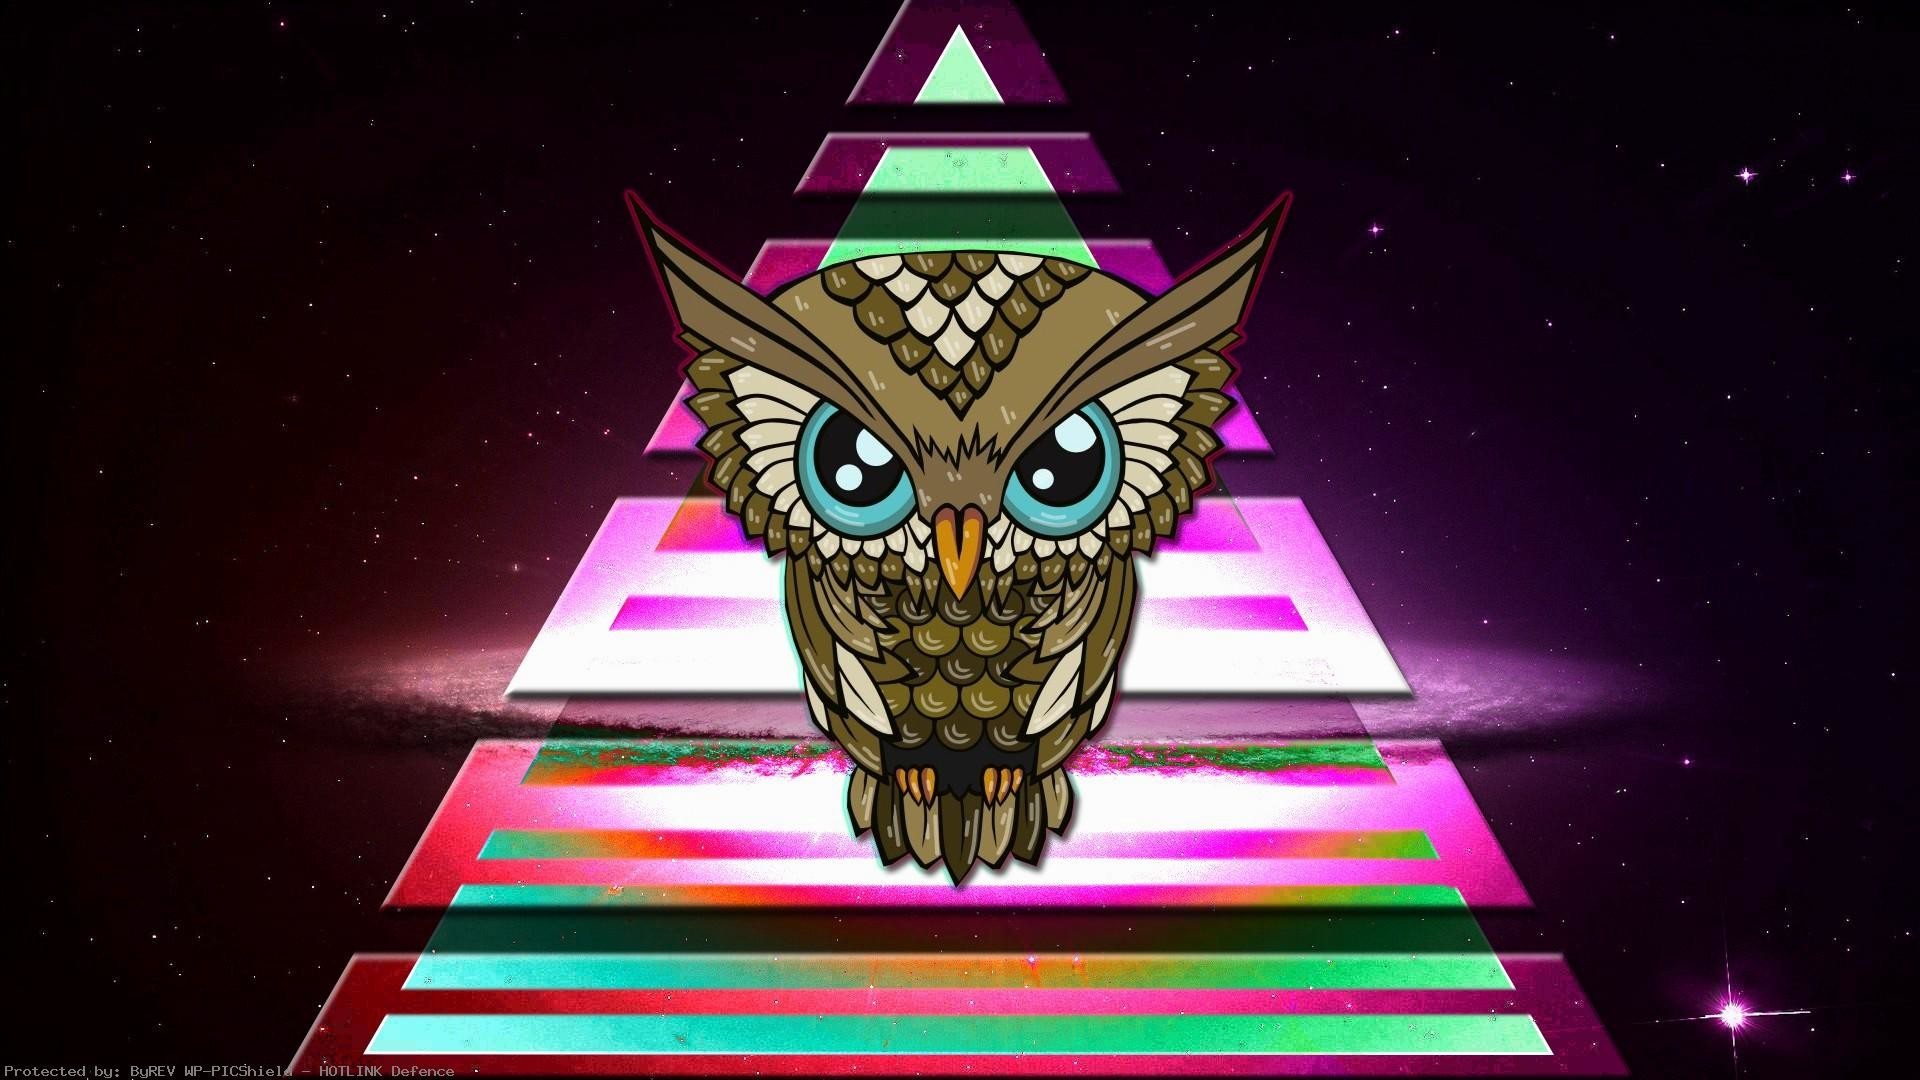 1920x1080 General--owl-triangle-triangle-colorful-space-Illuminati-